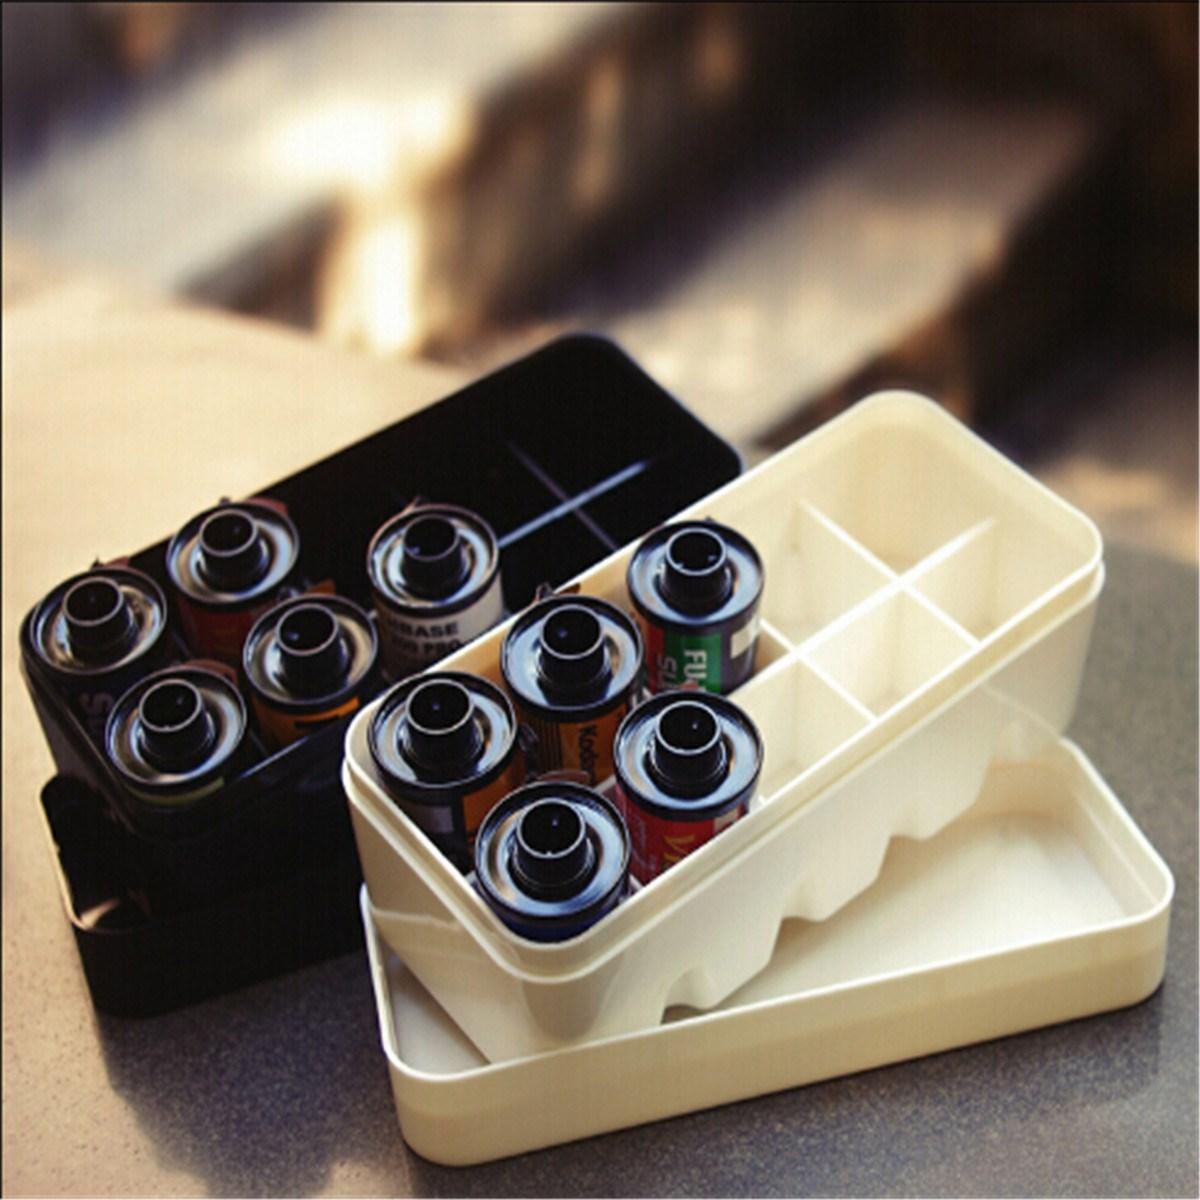 2019 Portable 10 Roll 35mm Film Case Storage Box With Lid